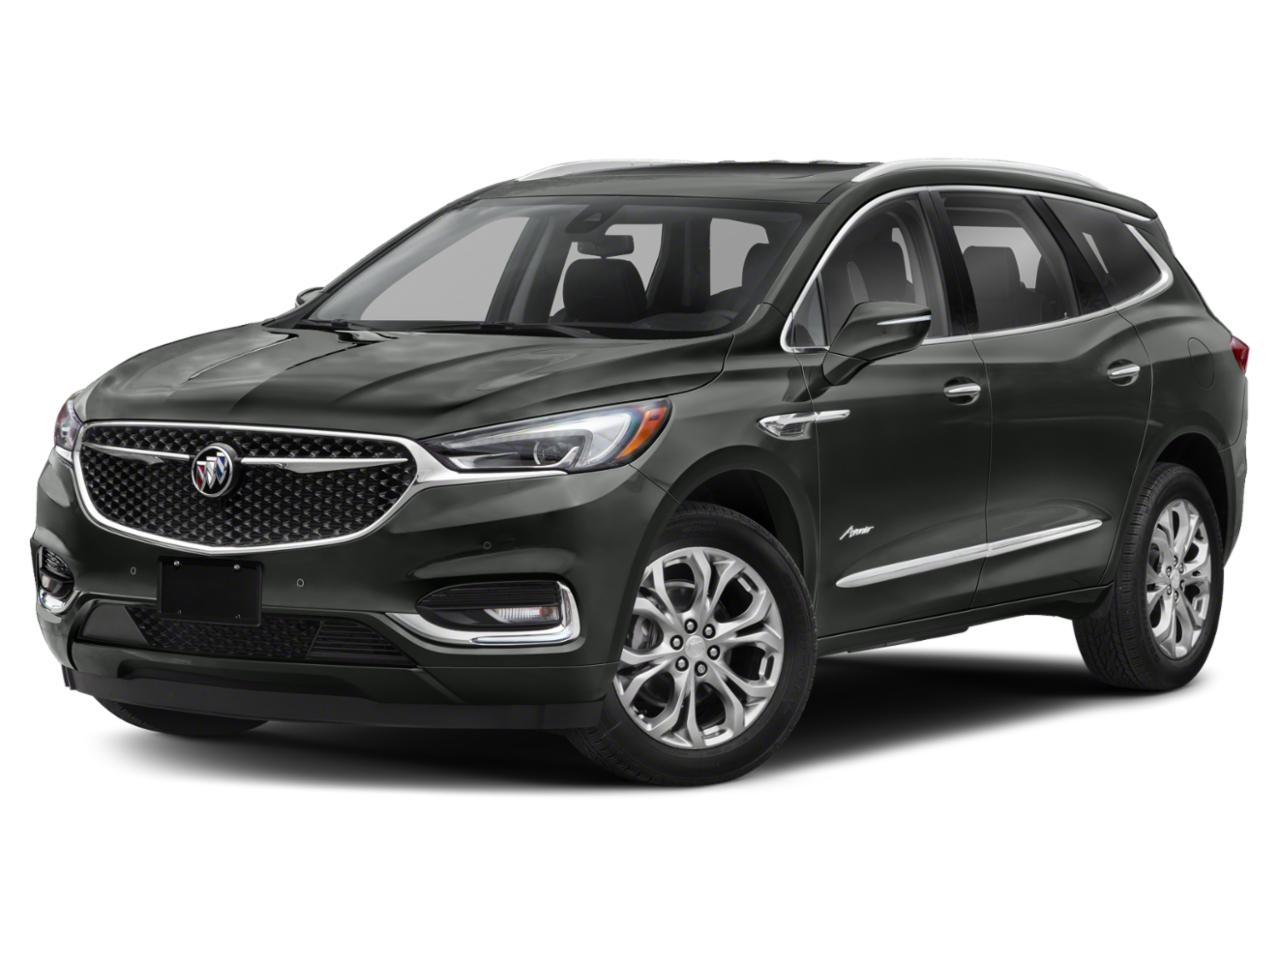 2021 Buick Enclave Vehicle Photo in Columbia, MO 65203-3903